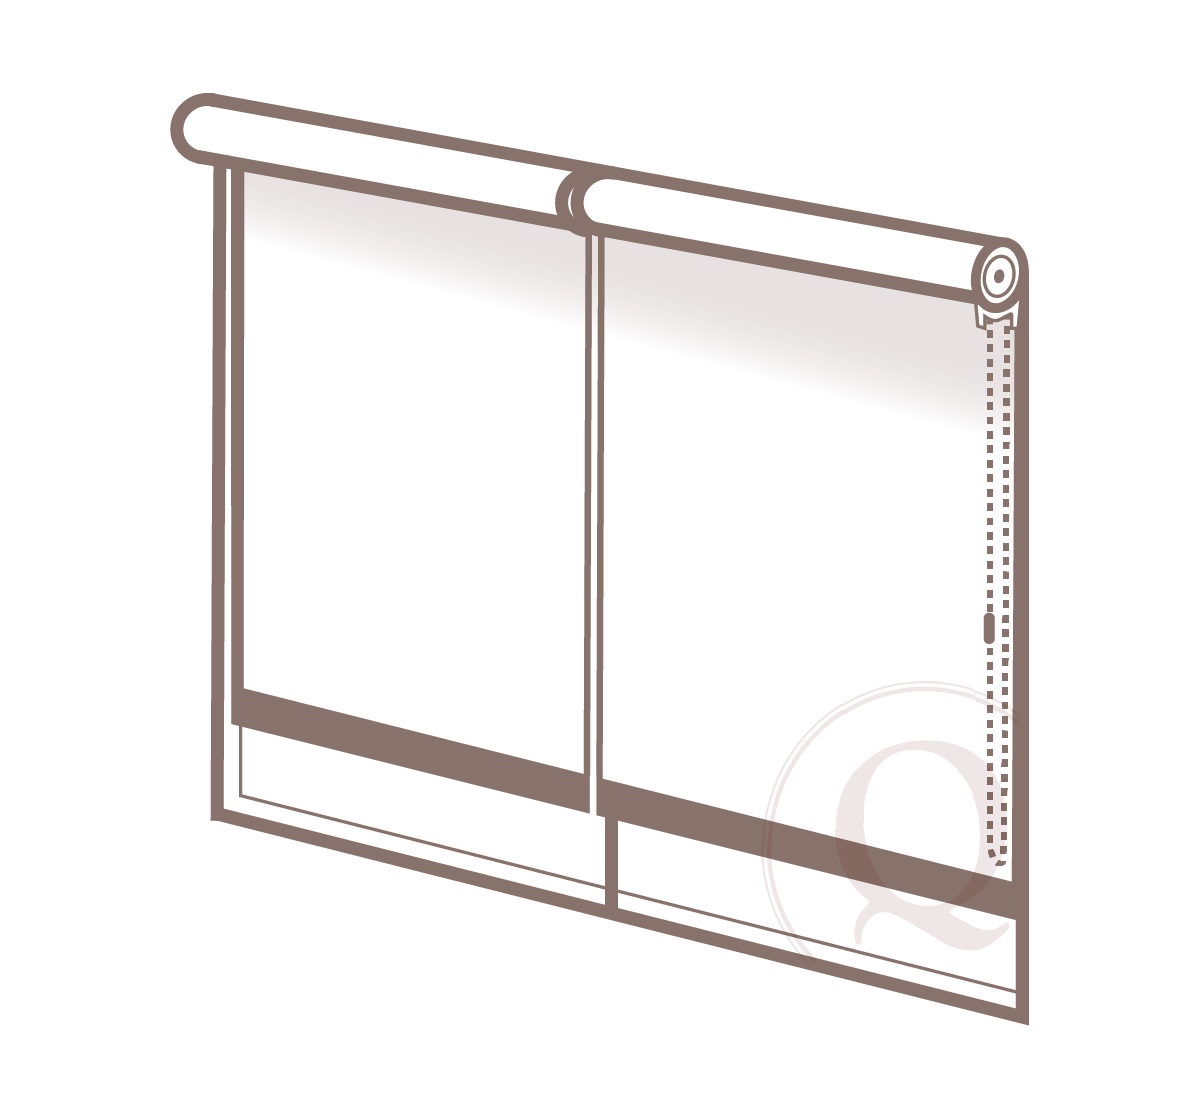 coupled shades - When two roller shades are mounted with an intermediate bracket and single clutch or motor per window.